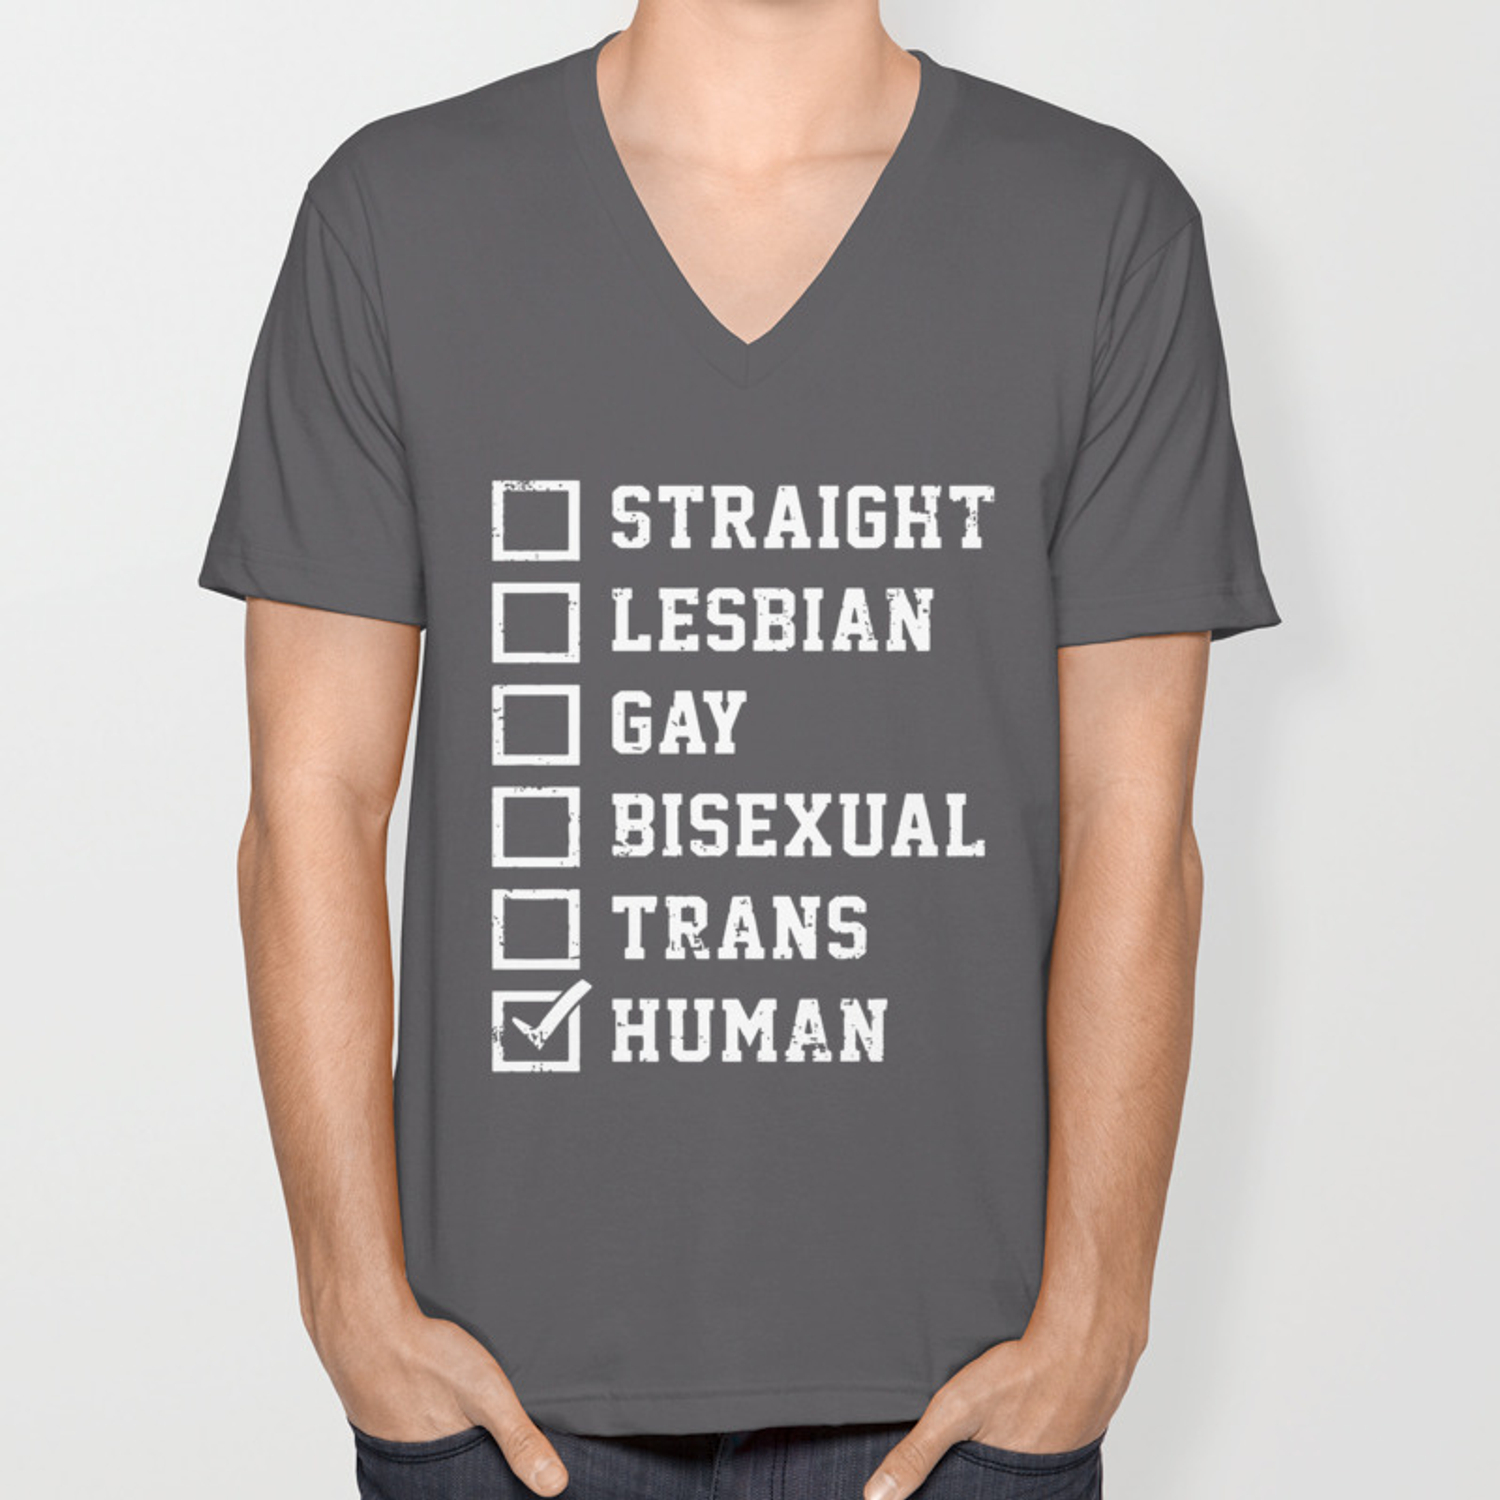 4ade2a92d2bf Straight Lesbian Gay Bisexual Trans Humans Checklist Pride Fashion Novelty  Mens Gay T-Shirts Unisex V-Neck by vikkibannerman   Society6